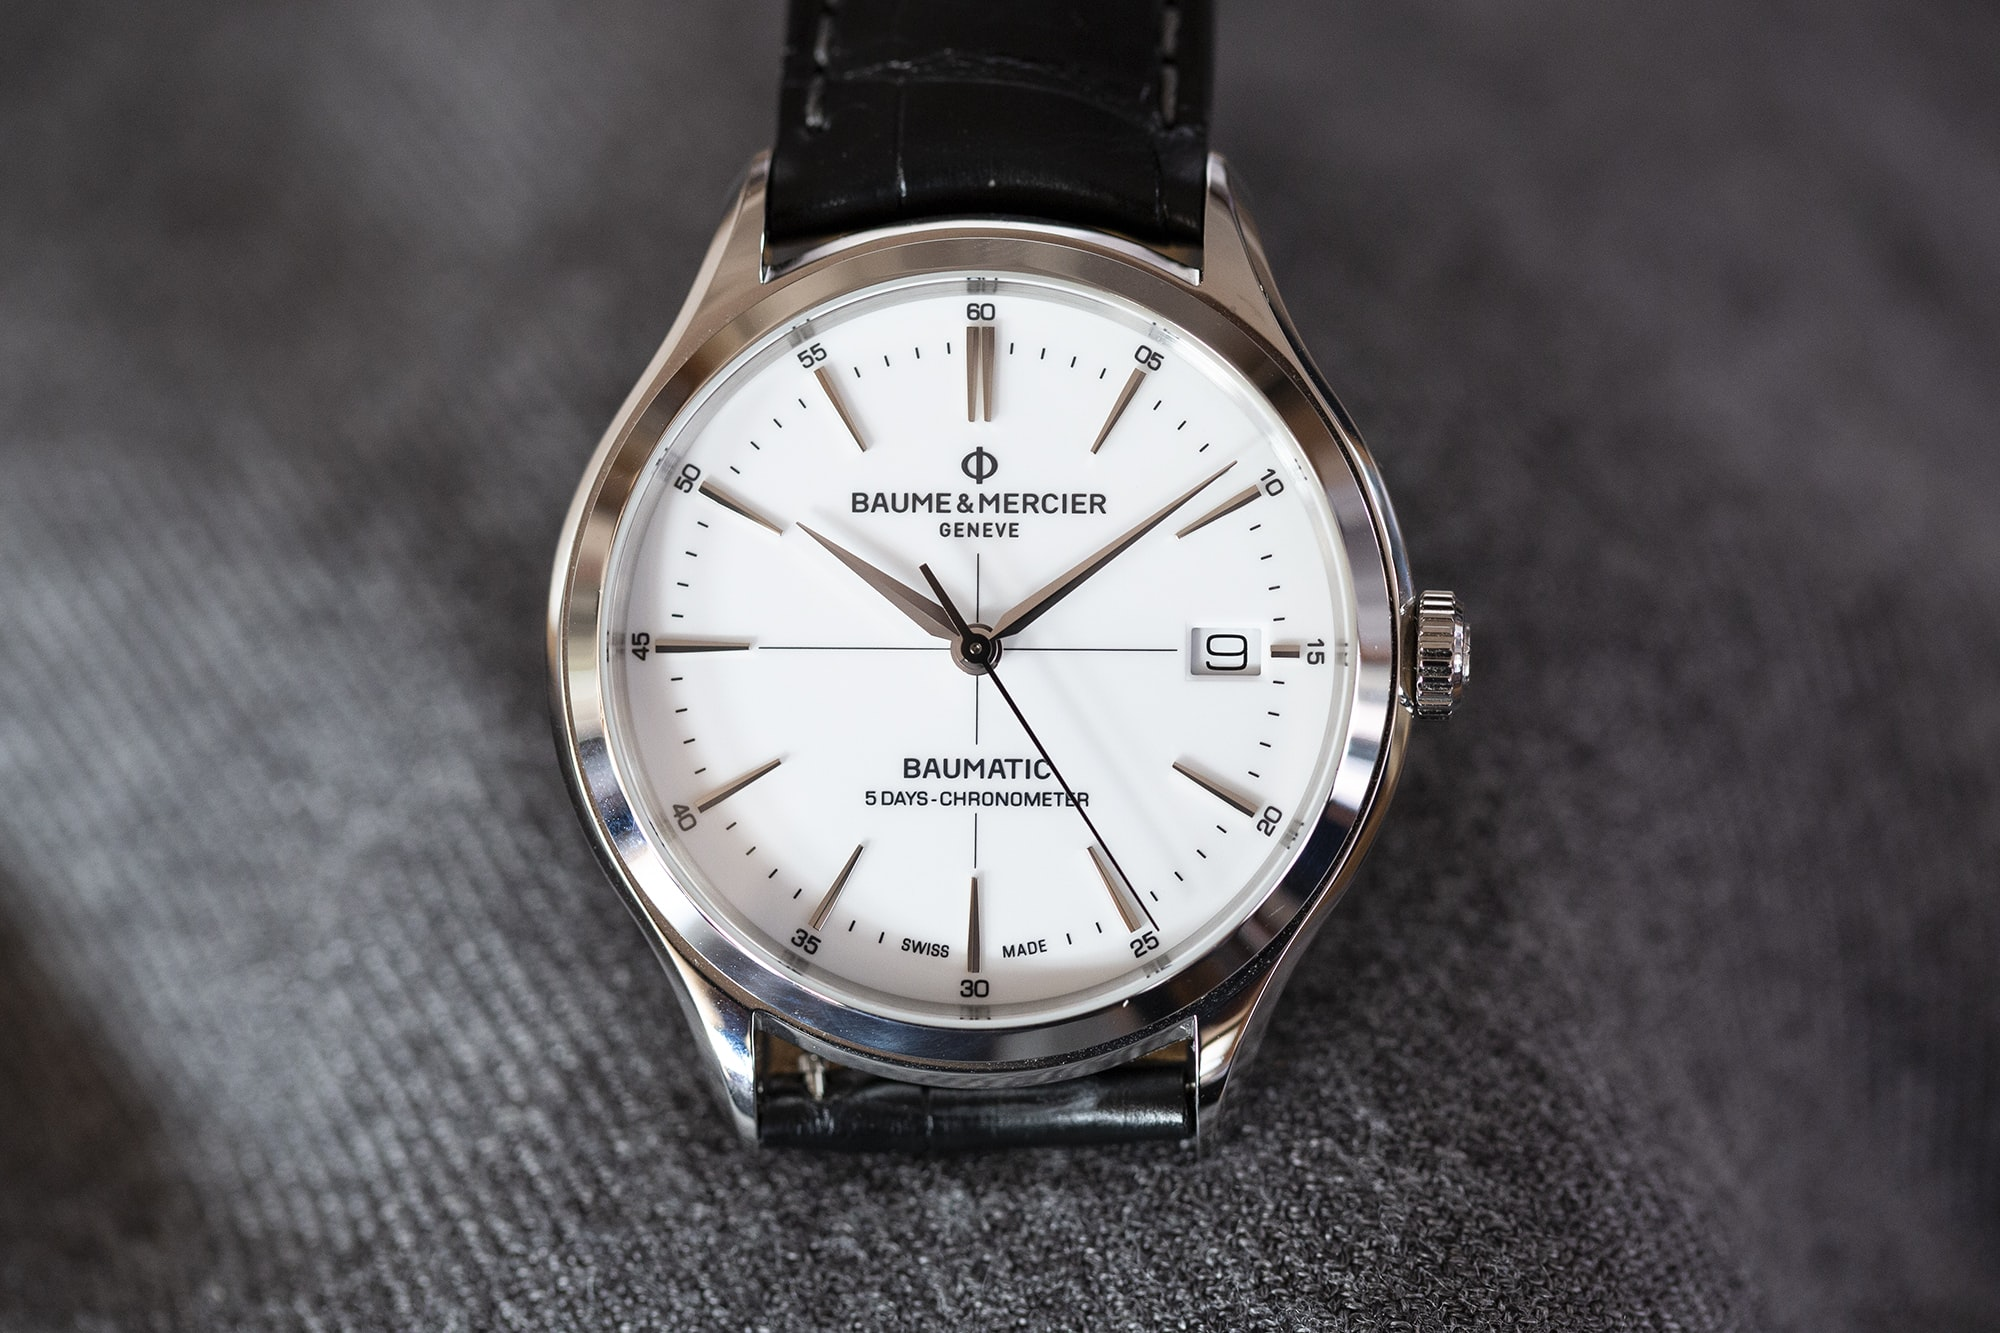 A Week On The Wrist: The Baume & Mercier Clifton Baumatic COSC  B89A9369